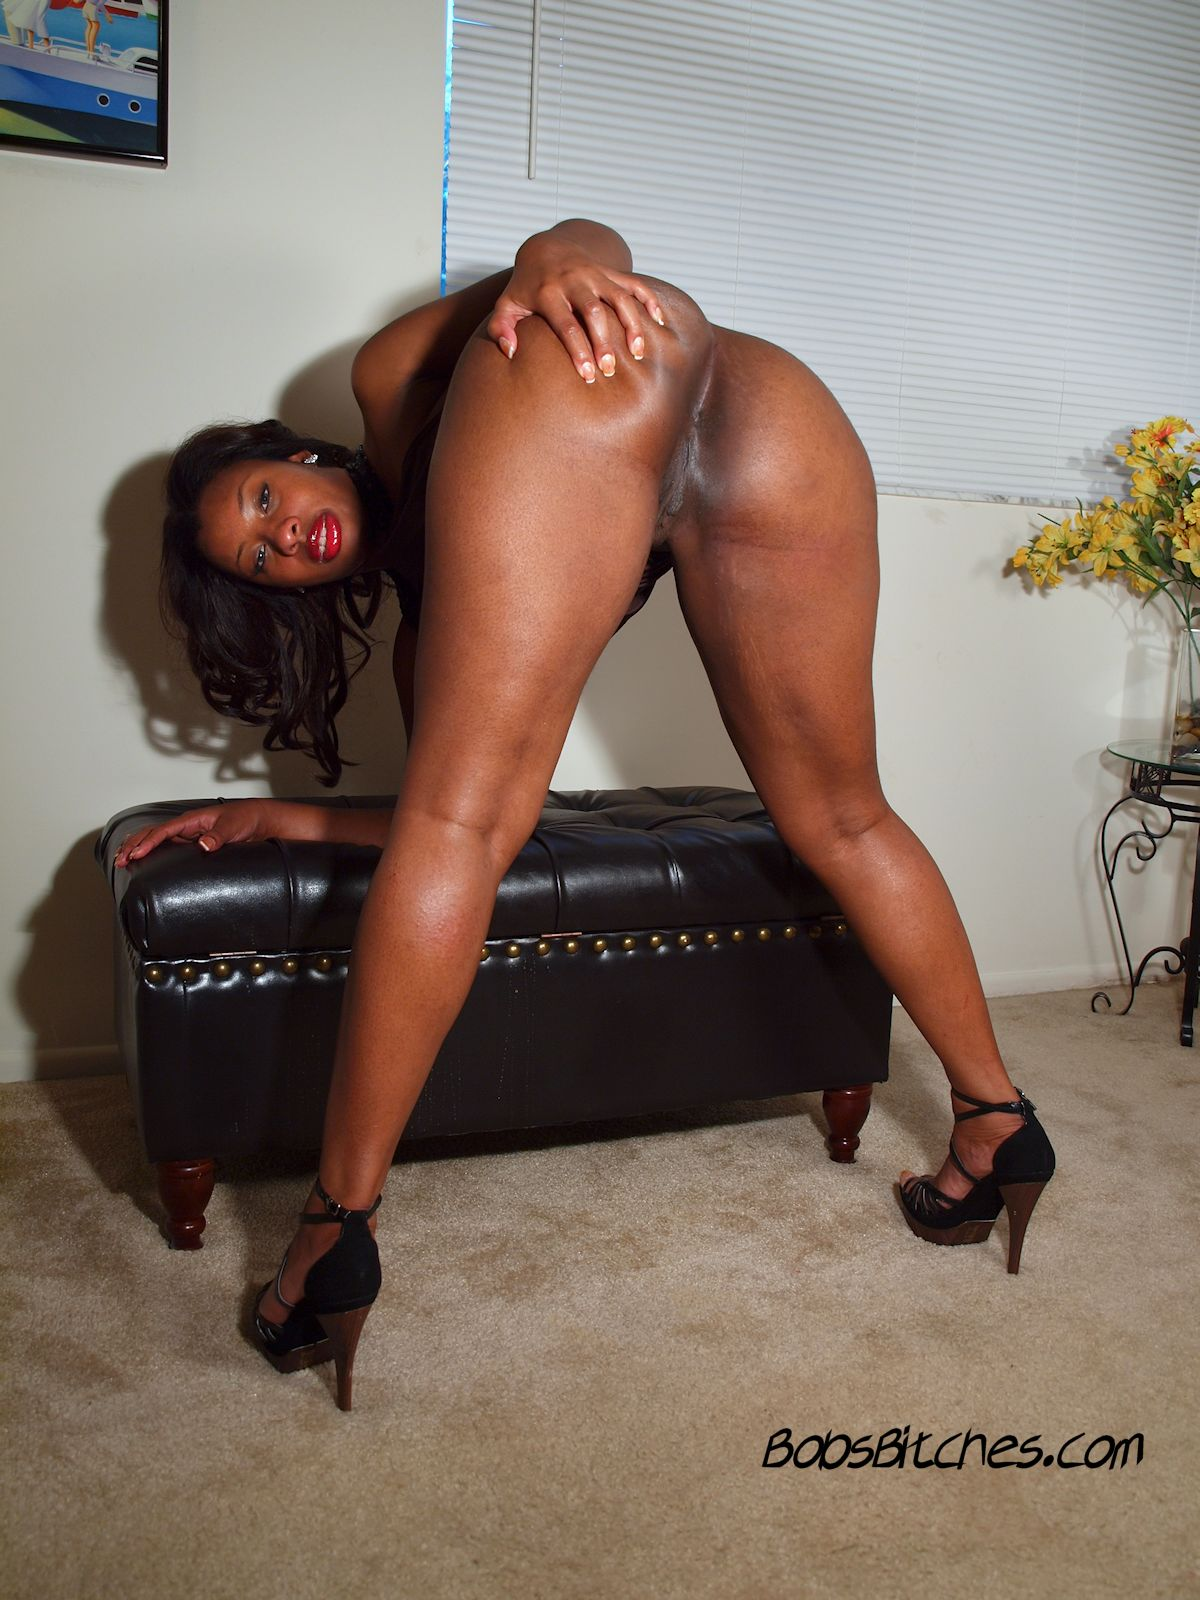 Ebony milf, Sienns Dream shoes off her big black ass and sexy legs.